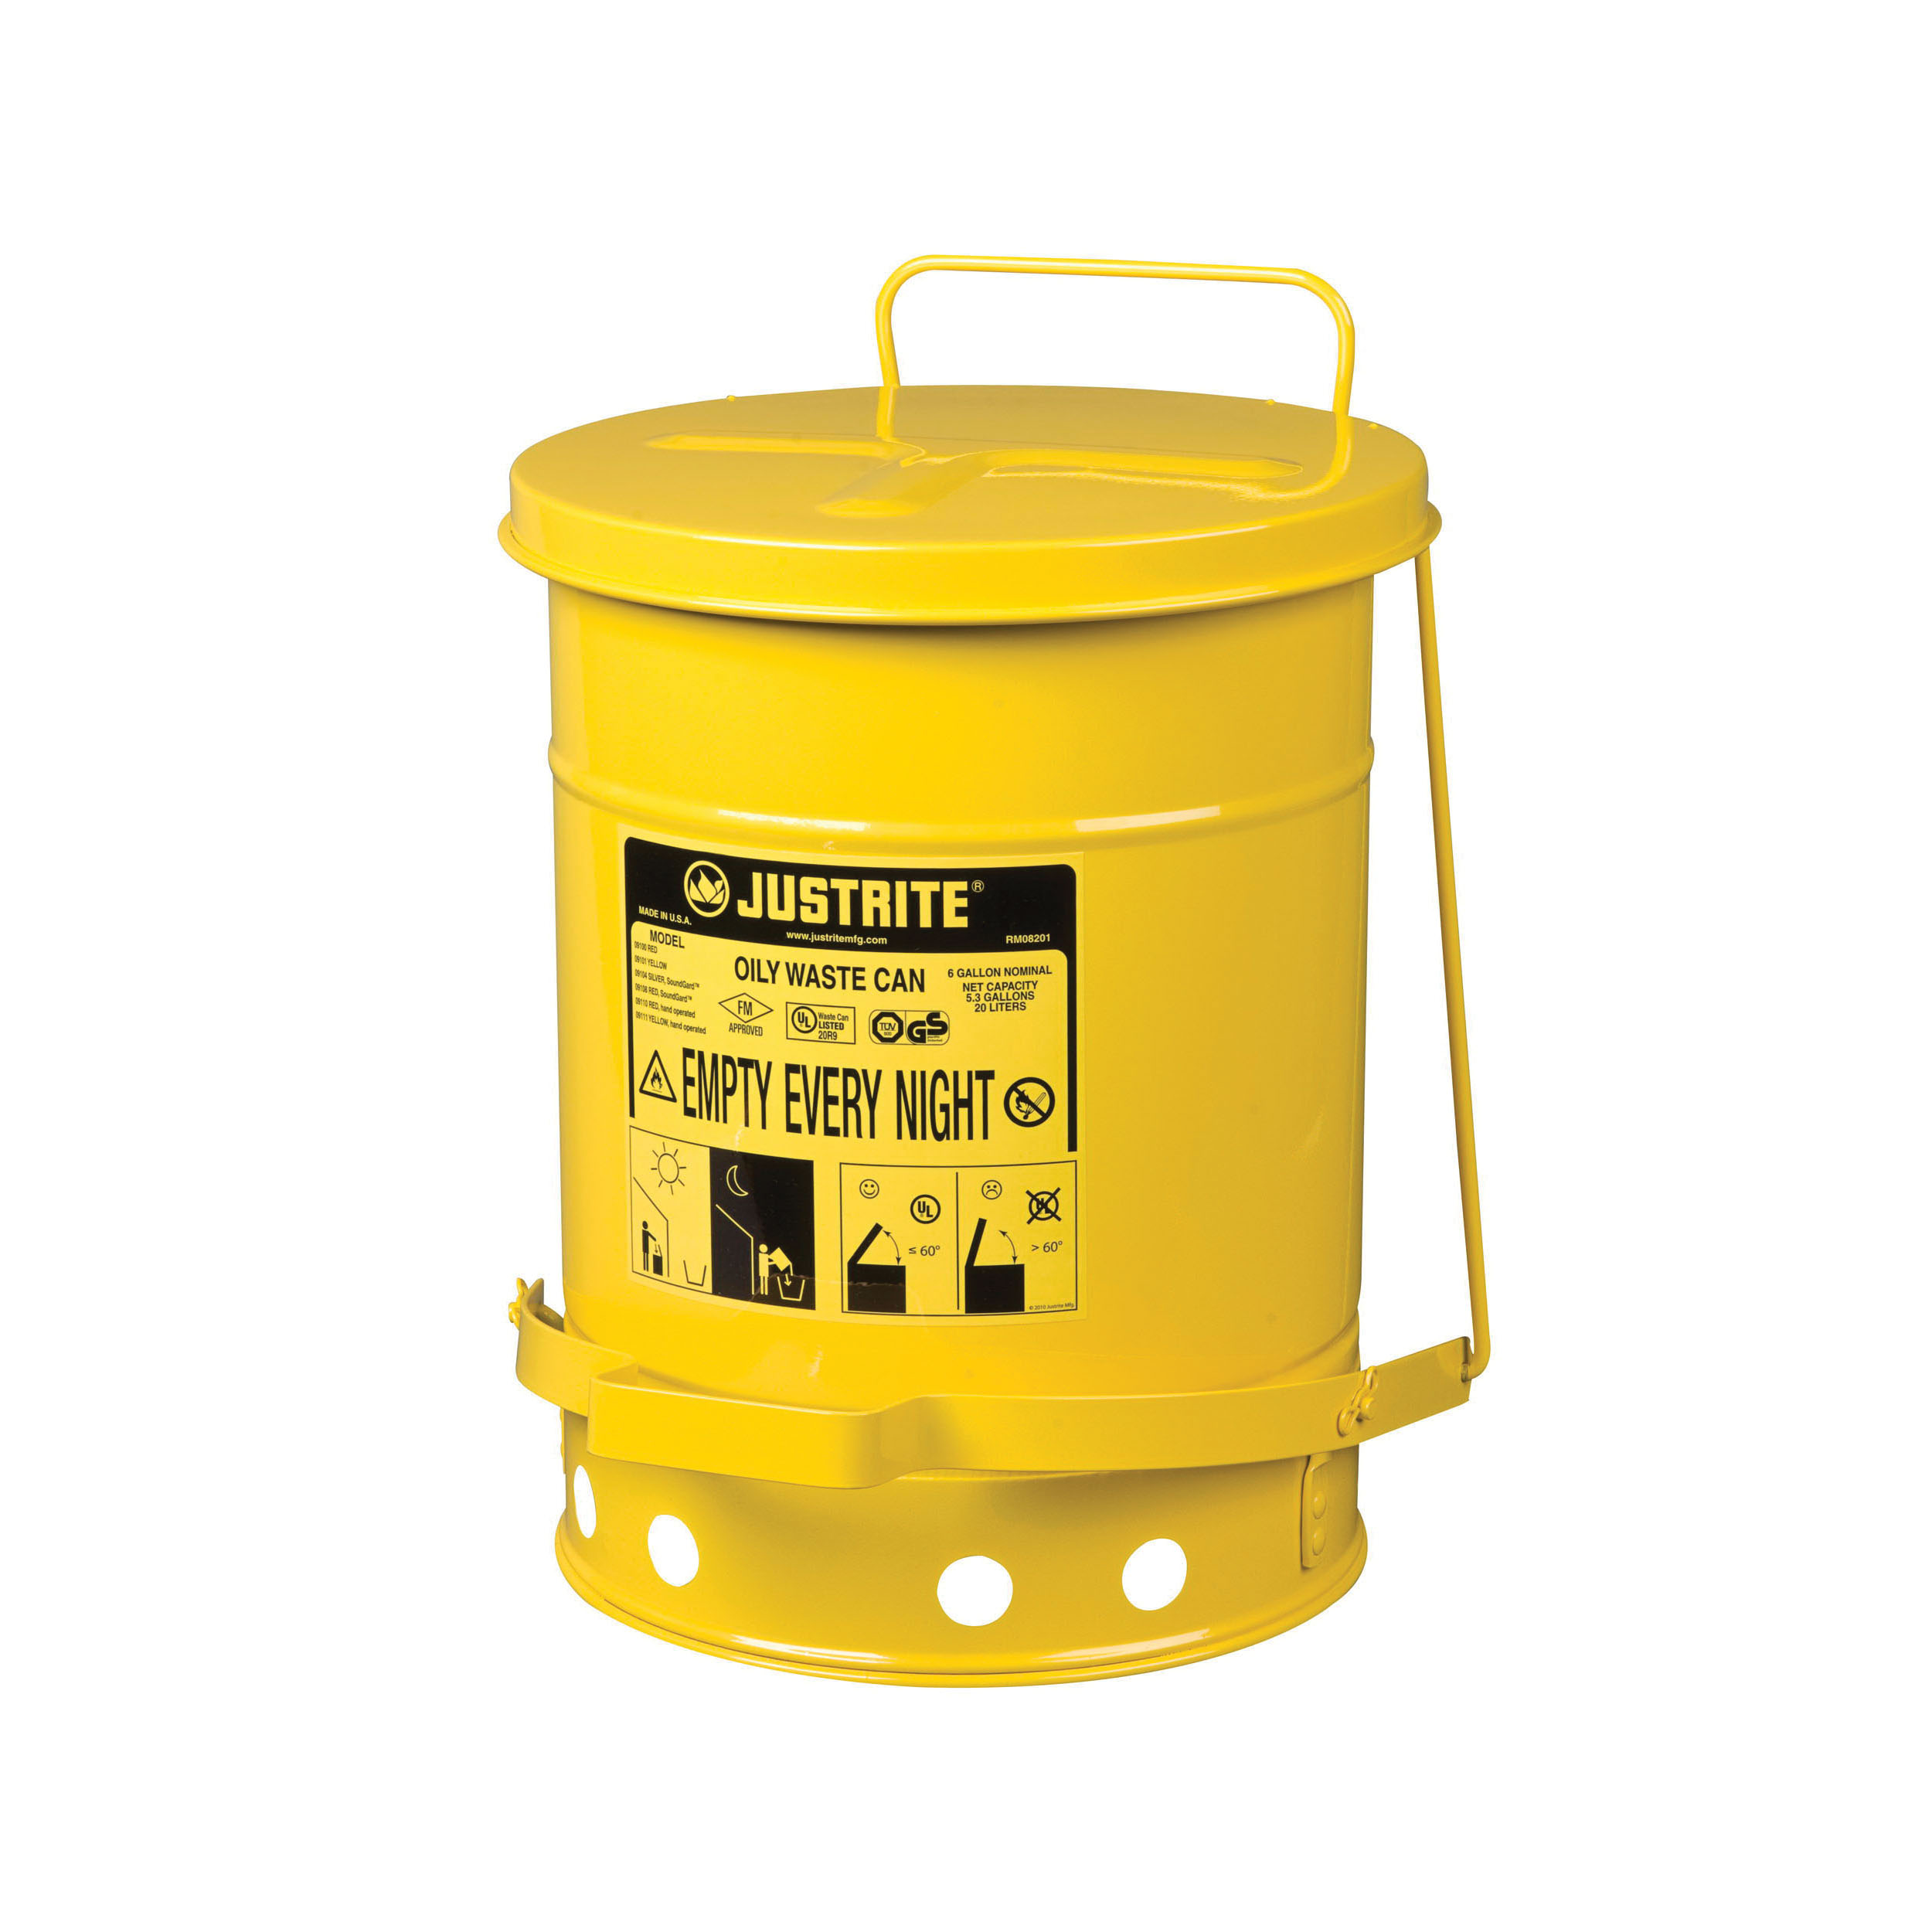 Justrite® 09101 Standard Foot Operated Oily Waste Can With Self-Closing Cover, 6 gal Capacity, 11-7/8 in Dia x 15-7/8 in H, Steel, Yellow